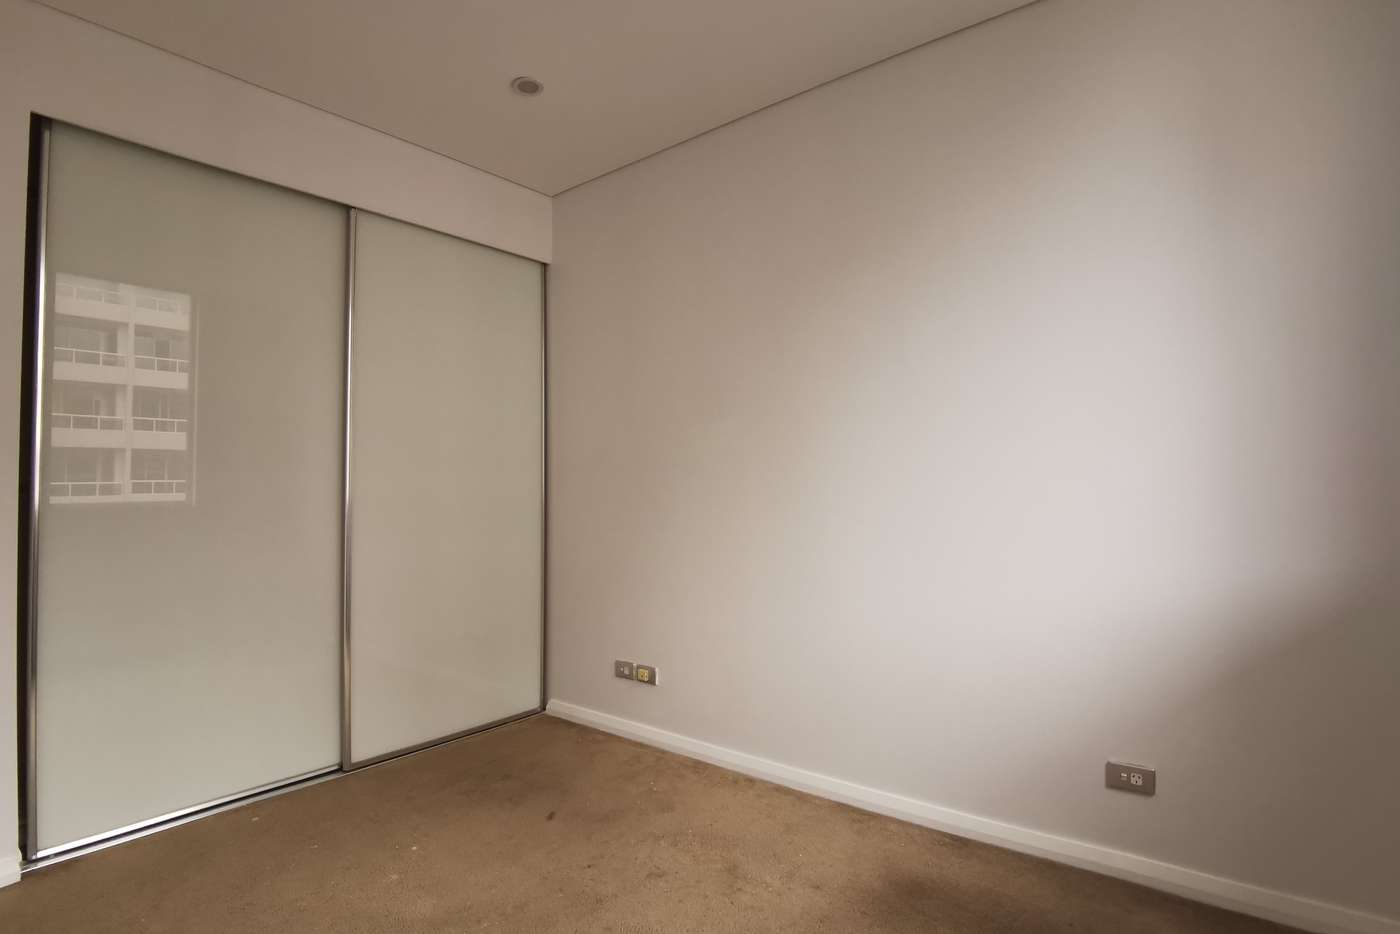 Sixth view of Homely apartment listing, 67/9 Broome St, Waterloo NSW 2017